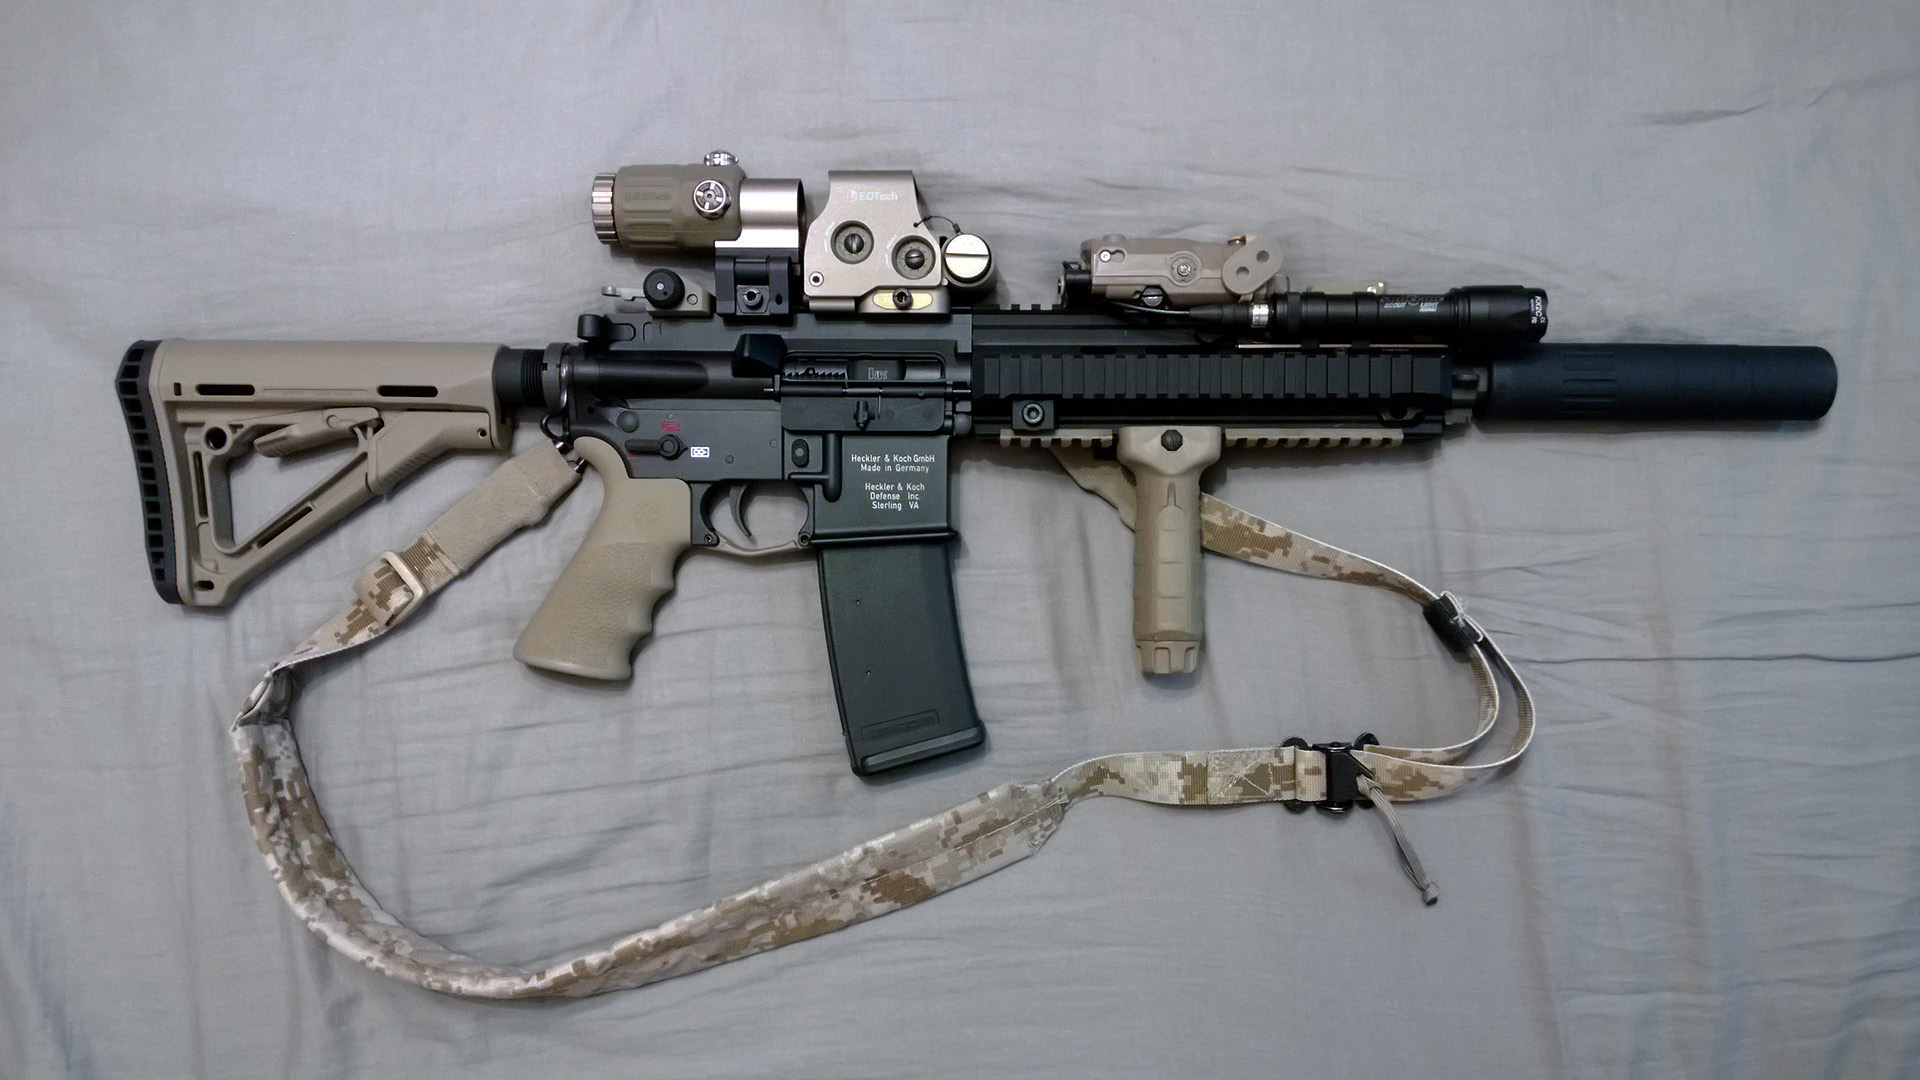 Devgru Hk416 Ubisoft forums